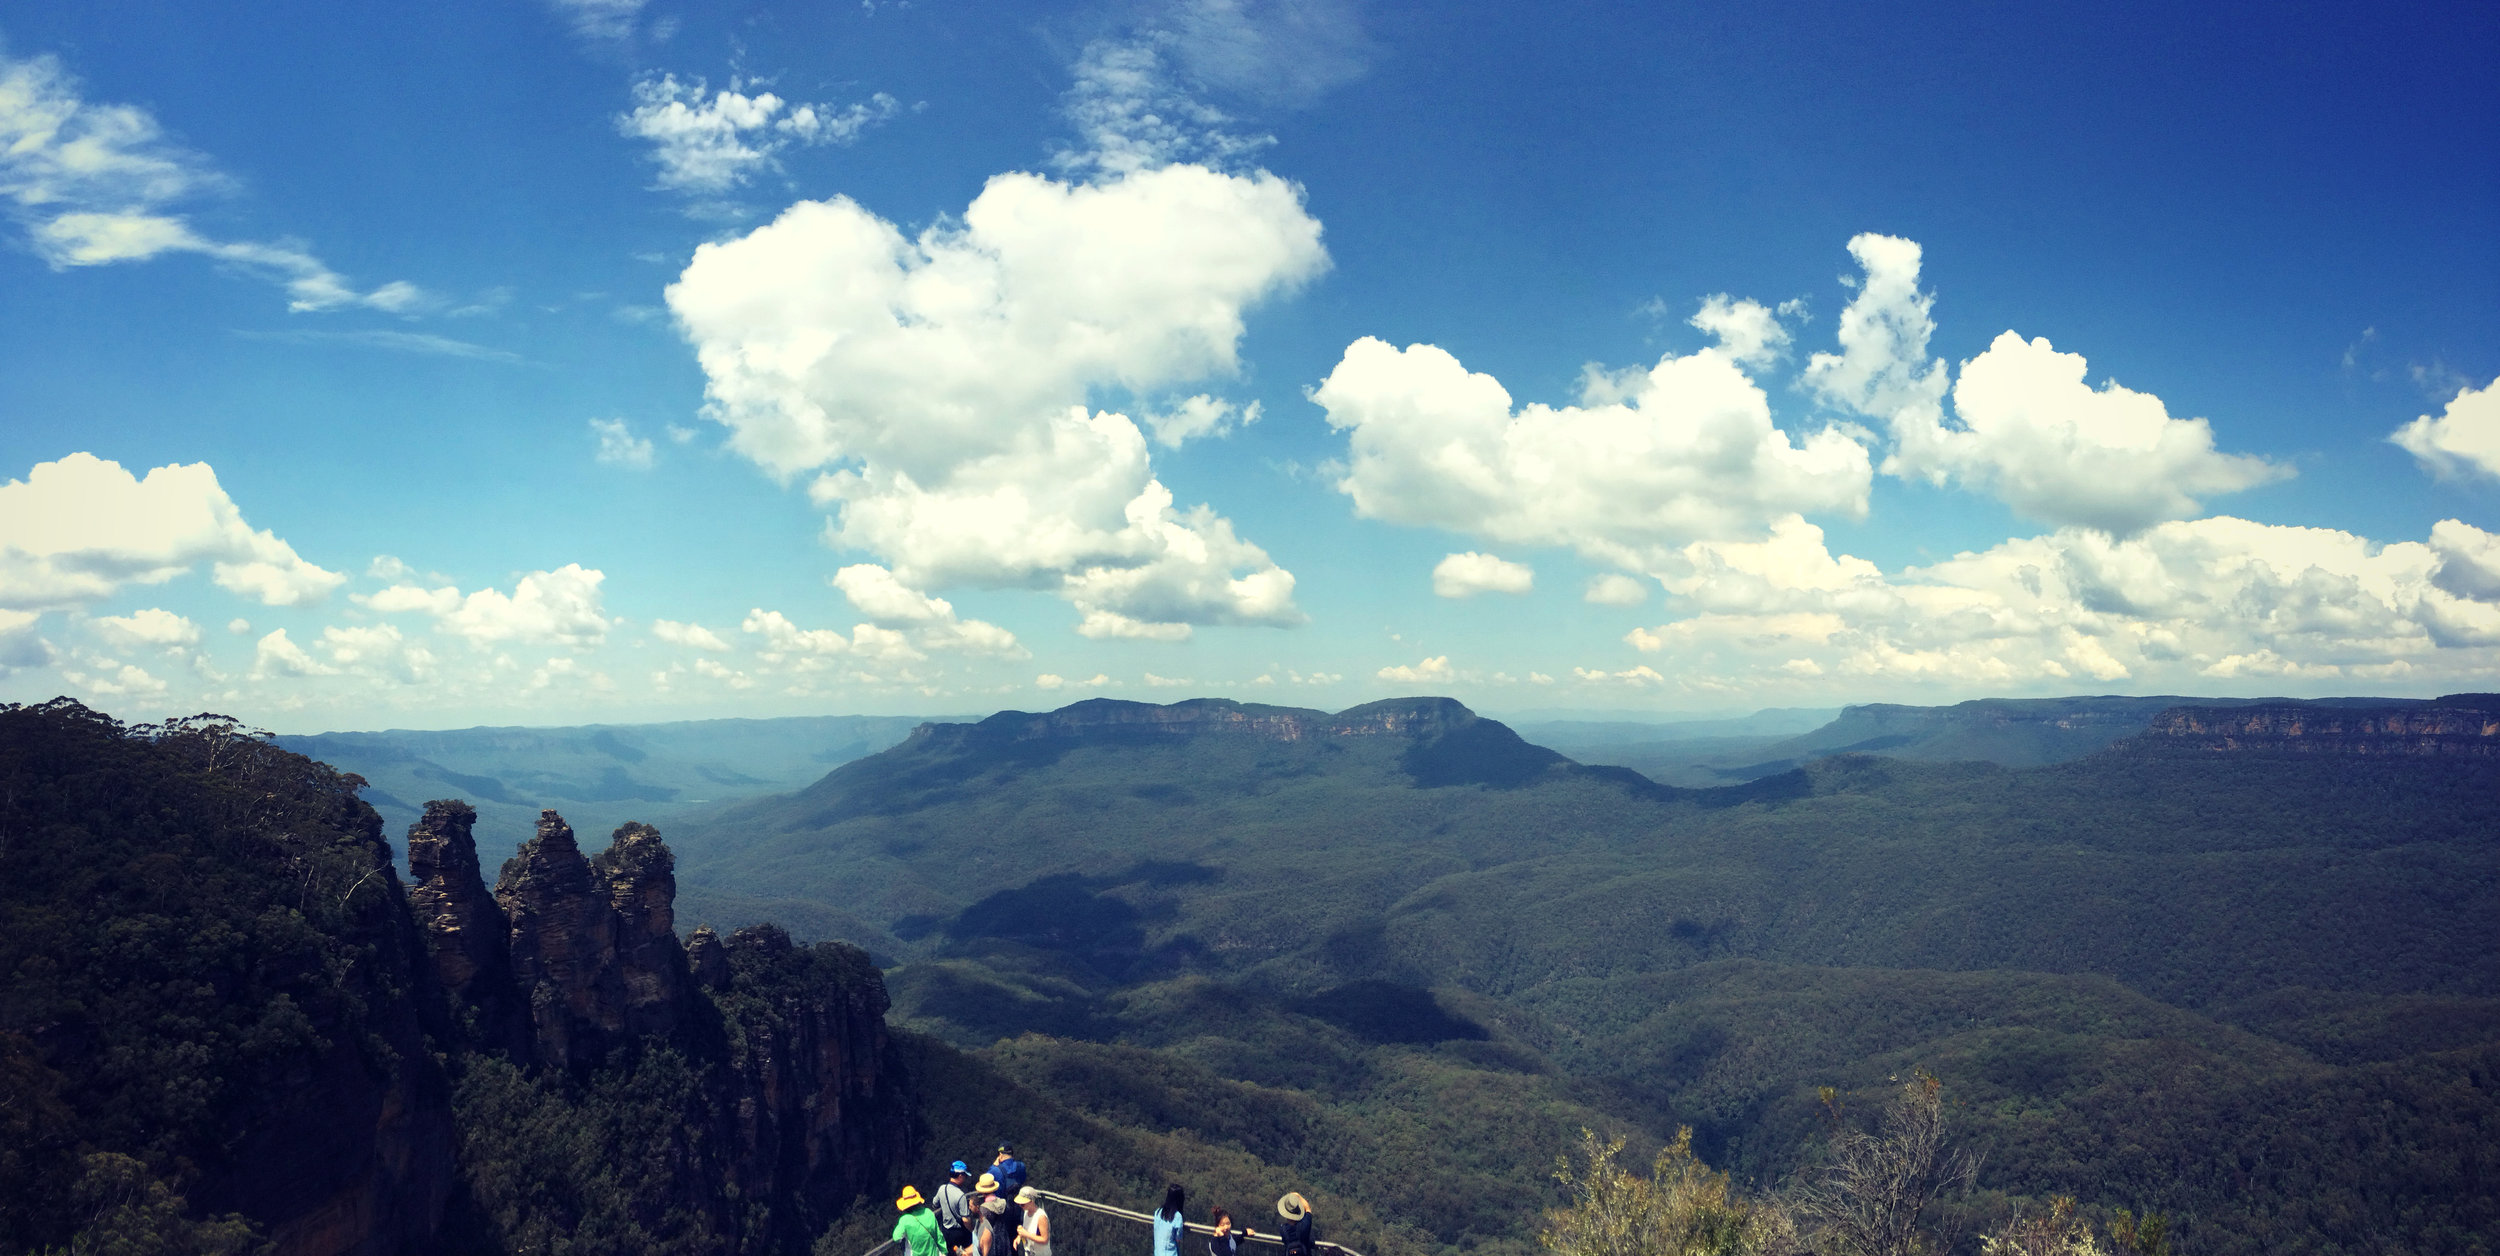 Main panorama to the Blue Mountains with the Three Sisters